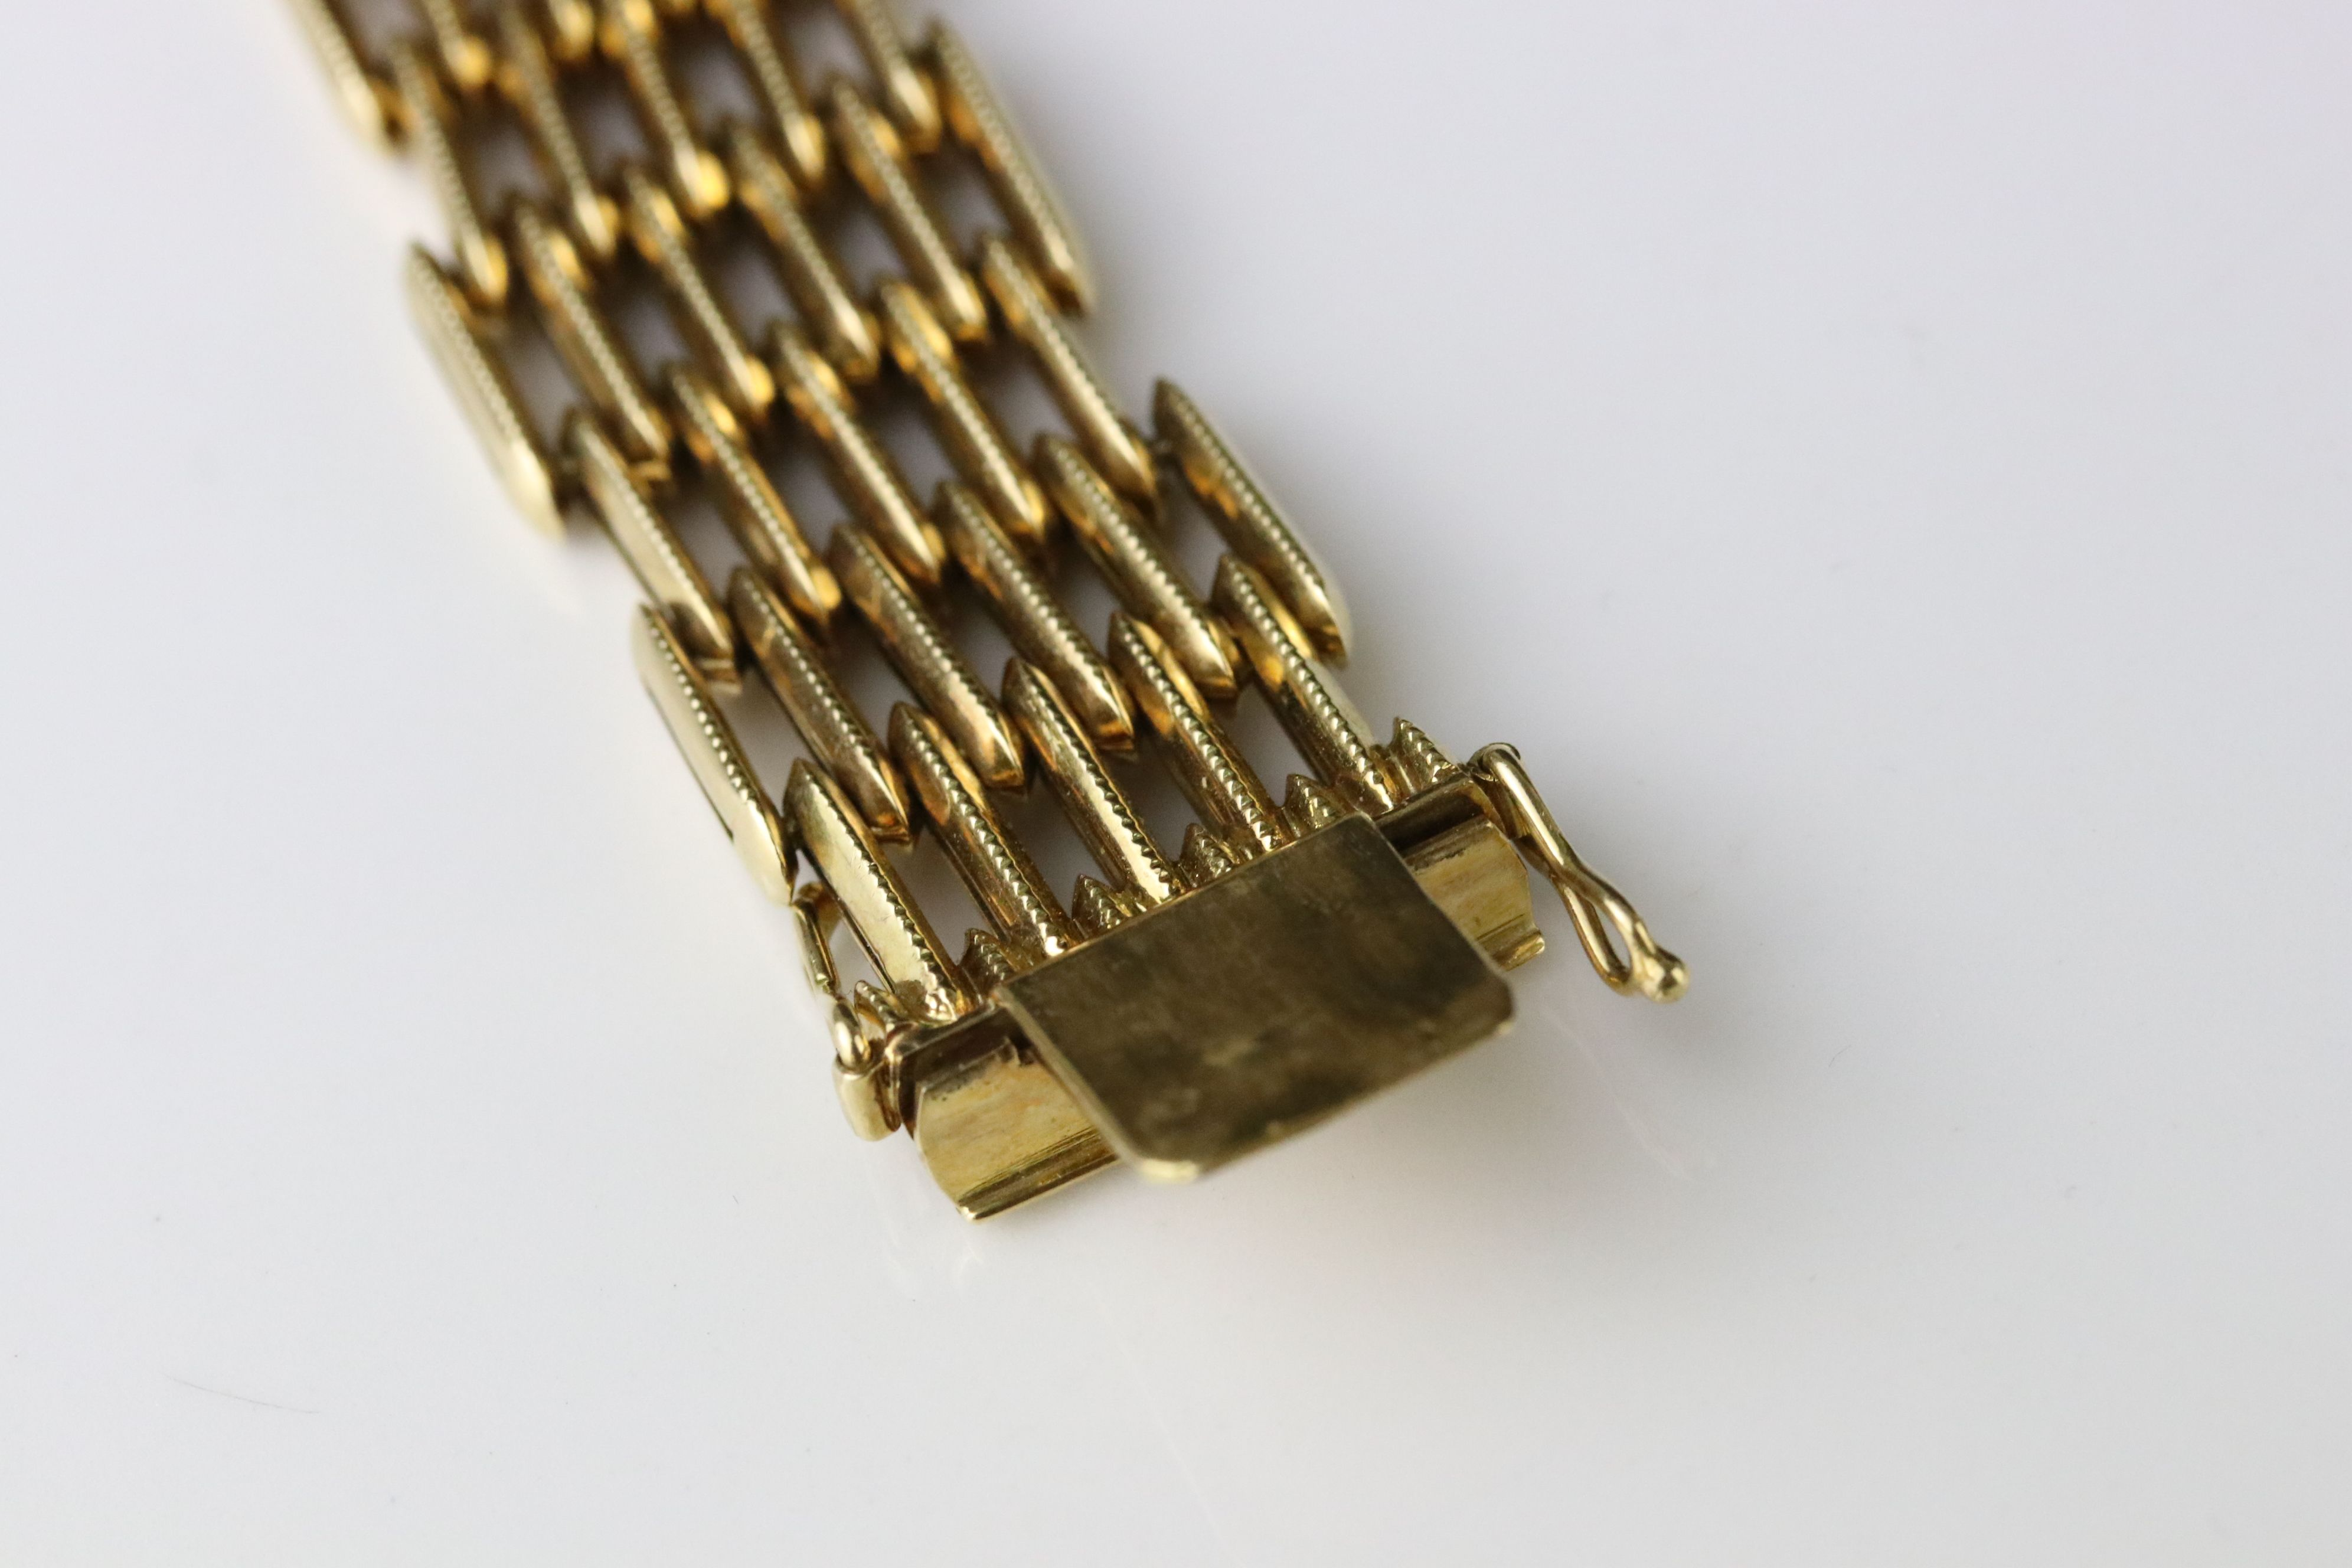 18ct yellow gold gate link style bracelet, tongue and box clasp, length approx 19cm - Image 4 of 5